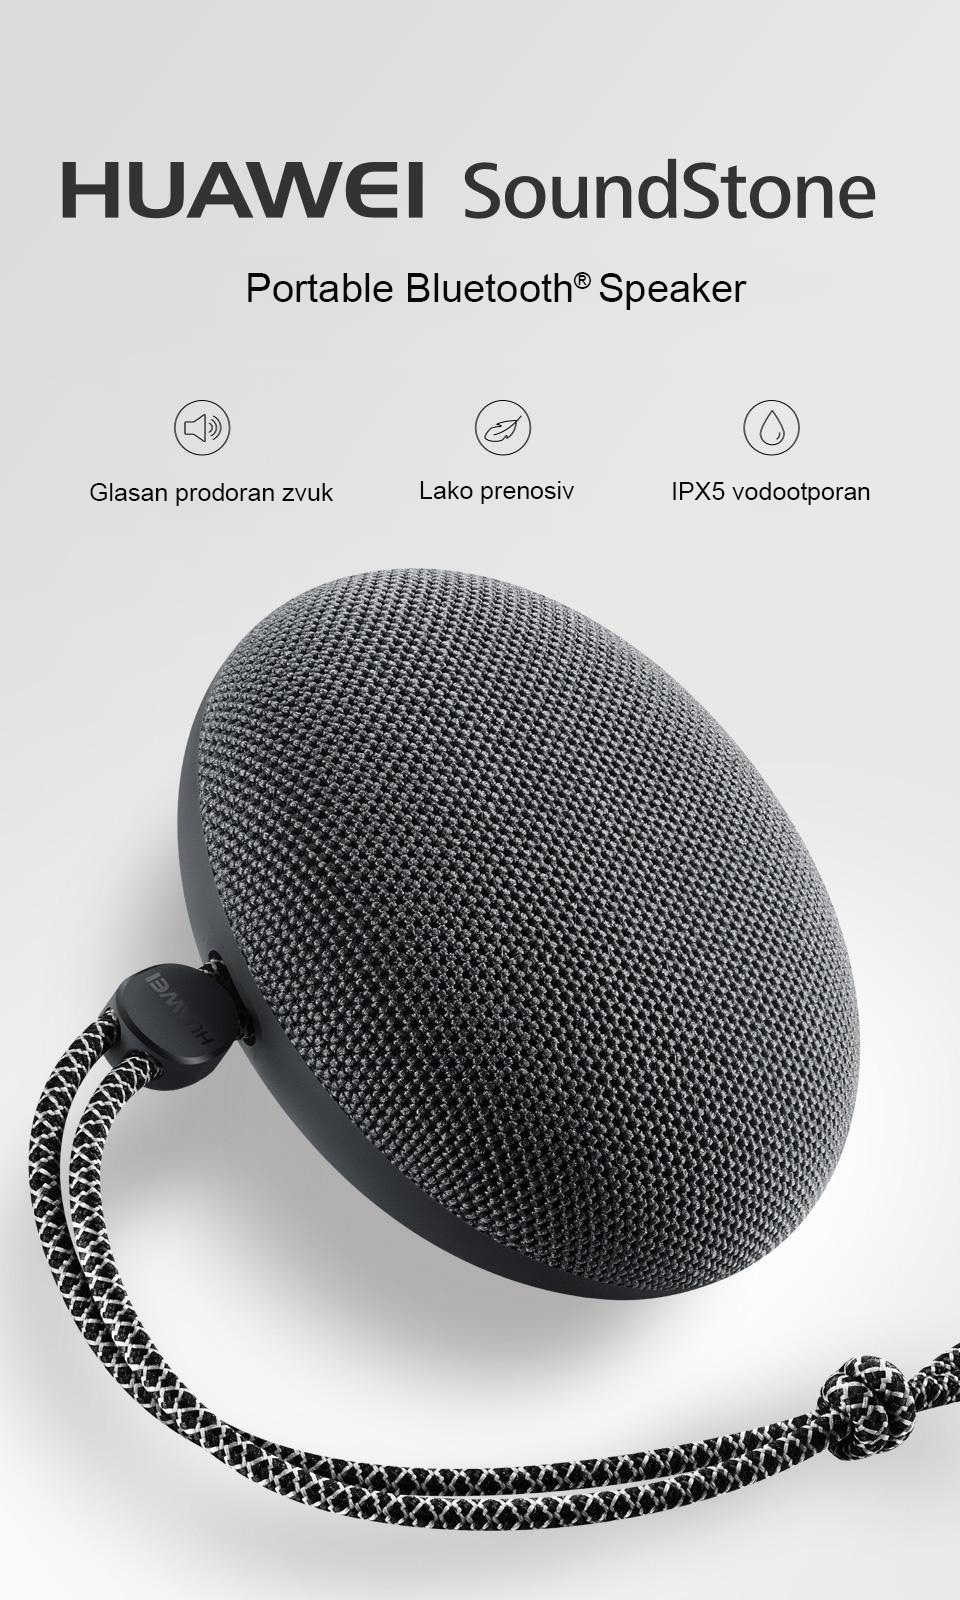 HUAWEI SoundStone Portable Bluetooth Speaker